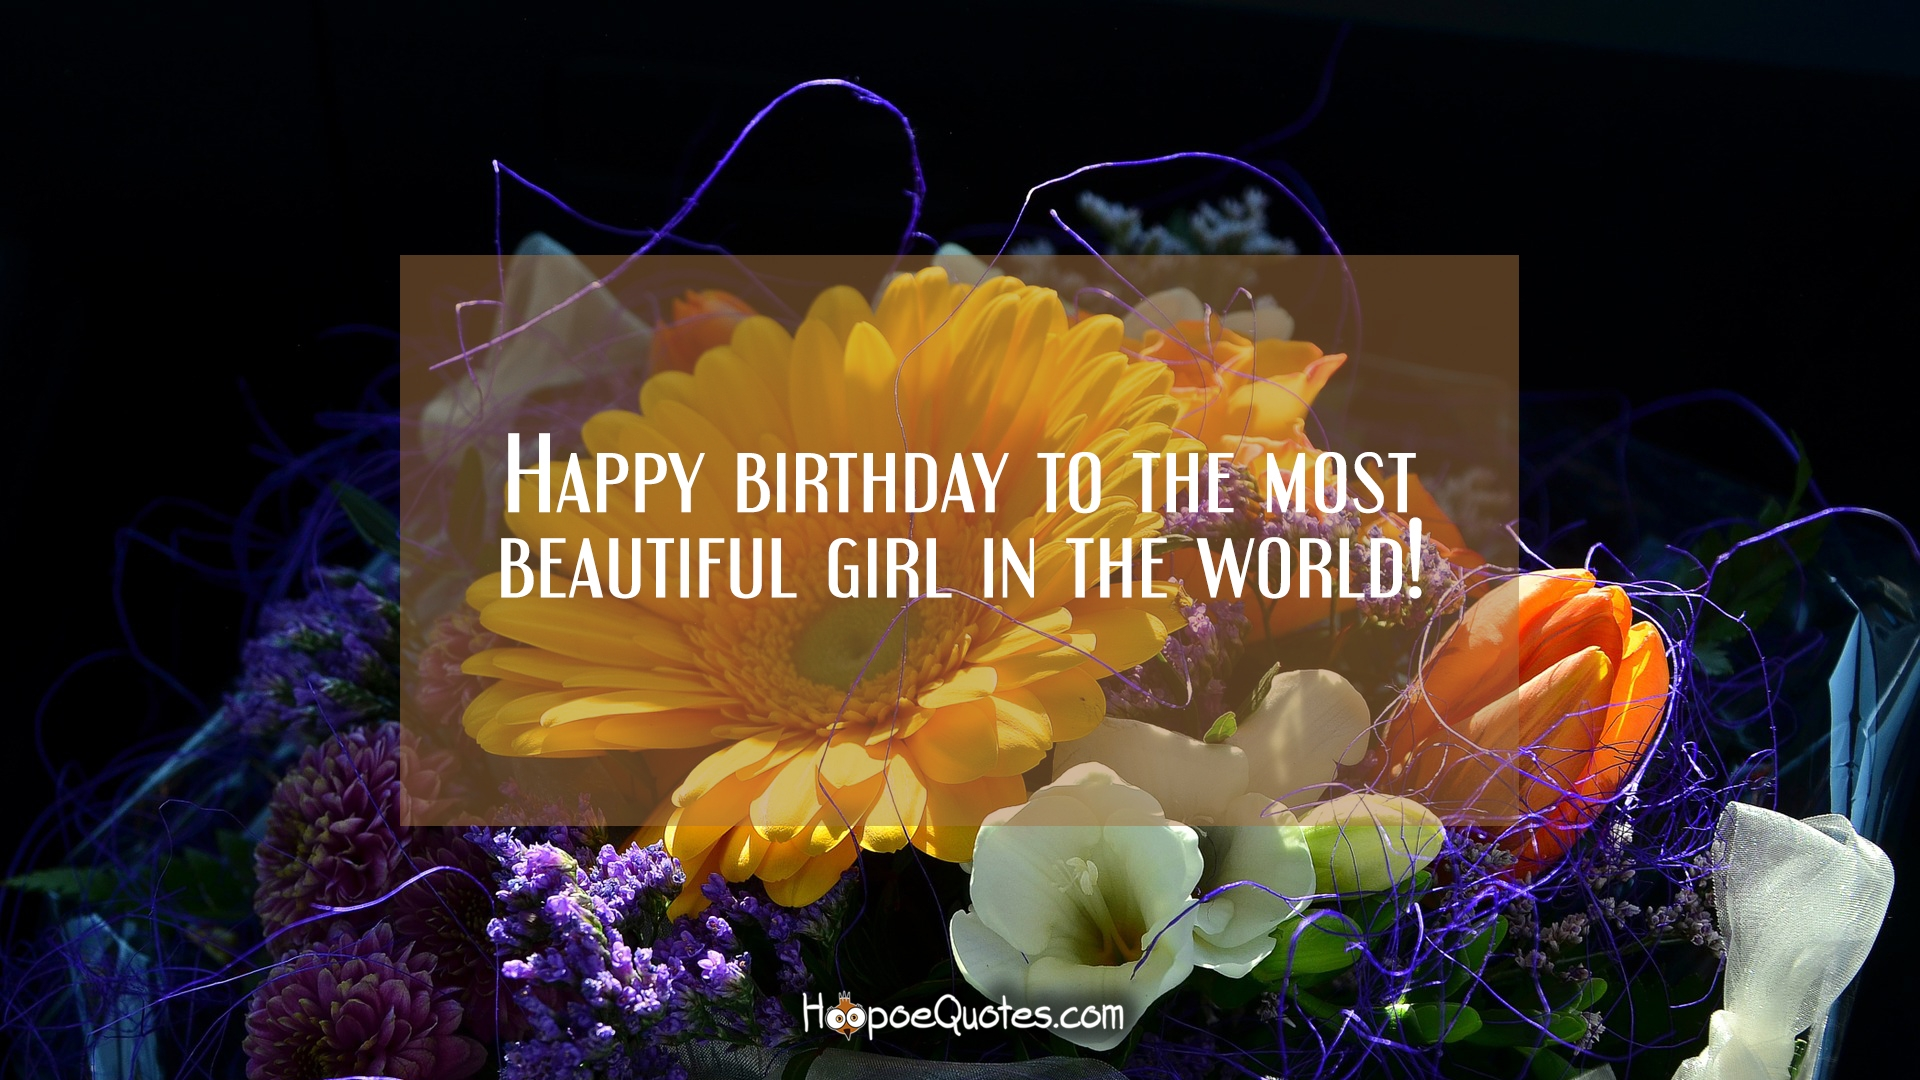 Happy Birthday Wishes Artinya ~ Happy birthday to the most beautiful girl in the world! hoopoequotes